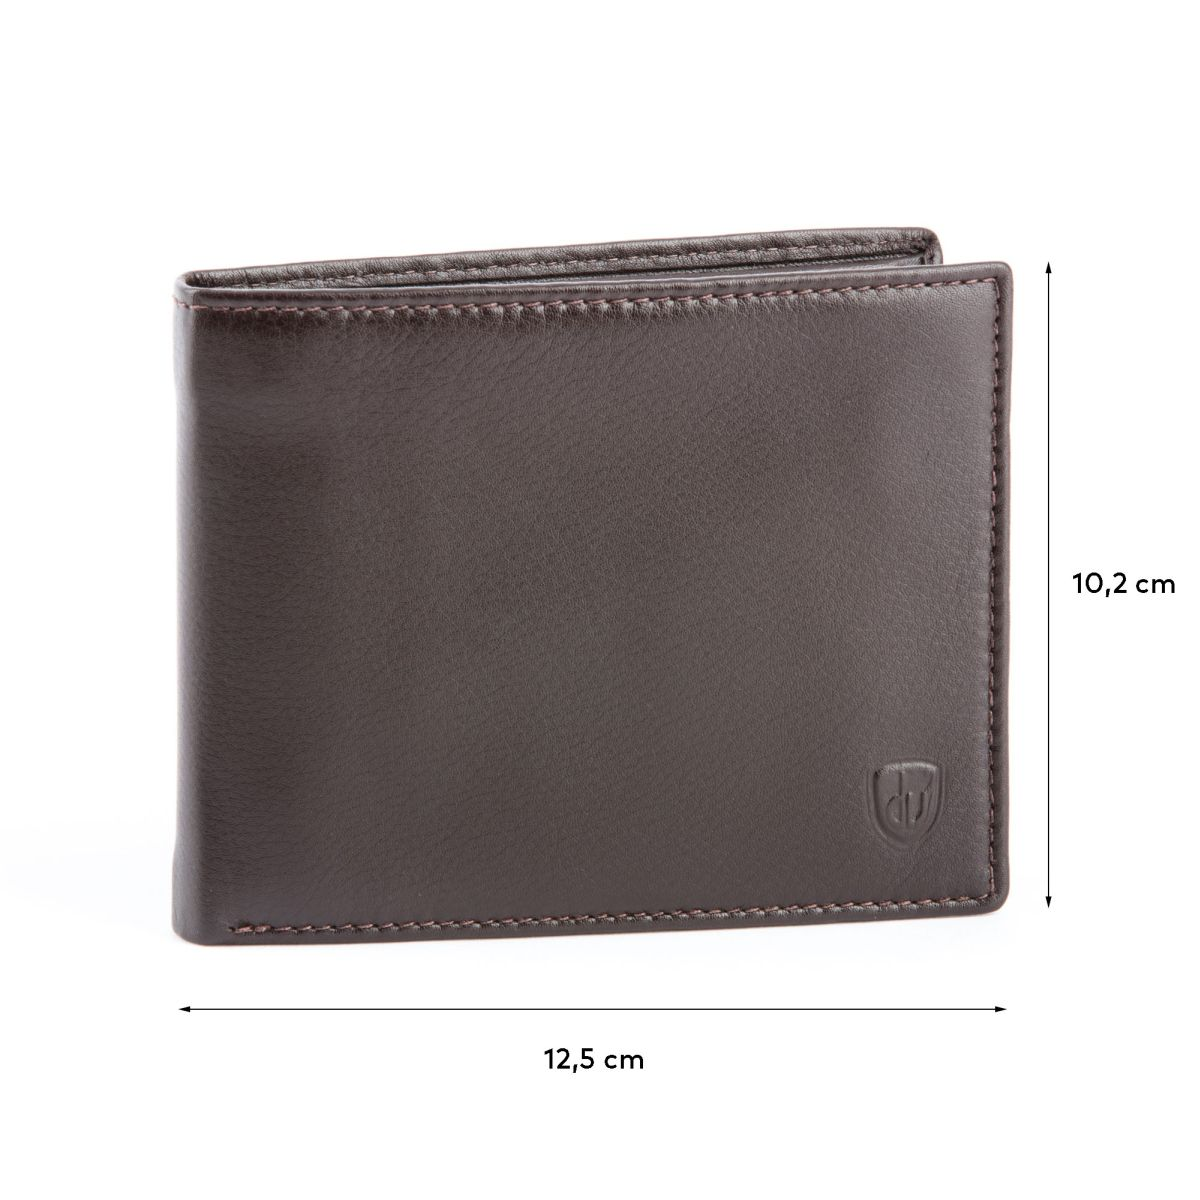 dv Leather Wallet for men with inner flap side - Brown